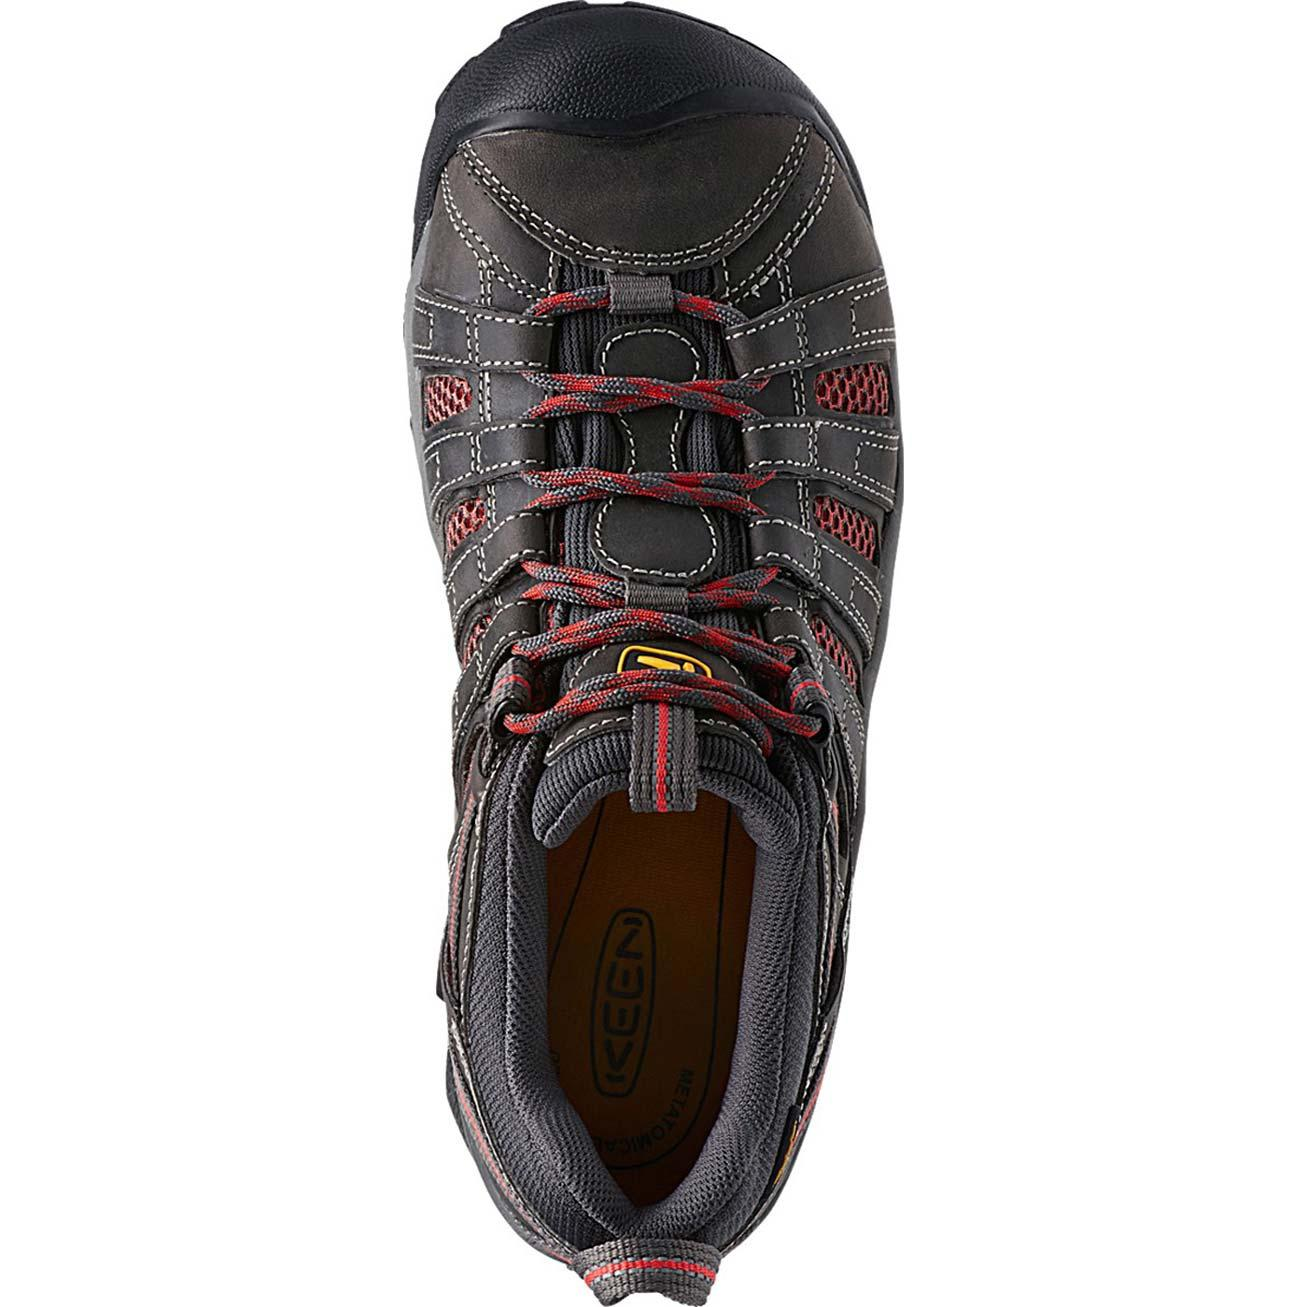 Womens Keen Safety Toe Shoes